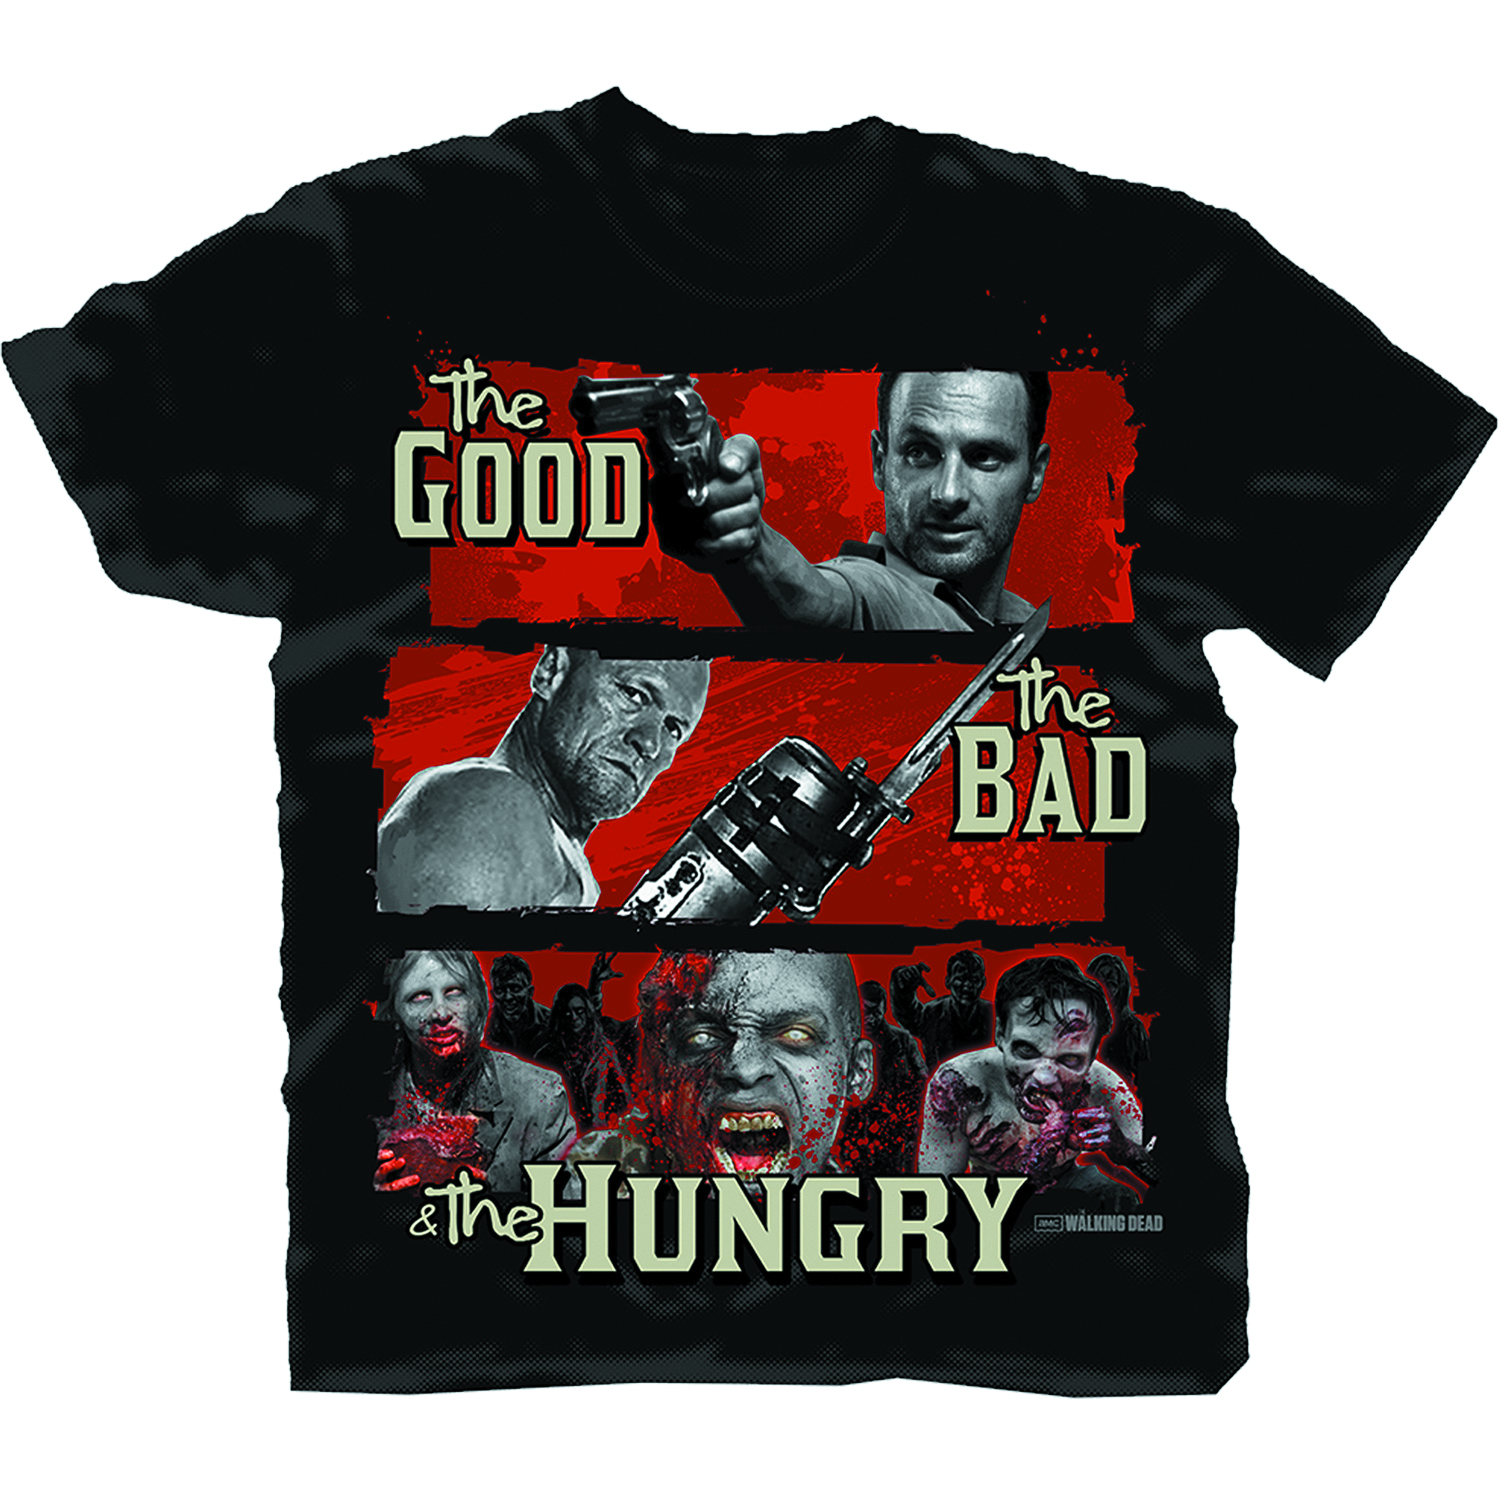 WALKING DEAD GOOD BAD HUNGRY PX BLK T/S XXL